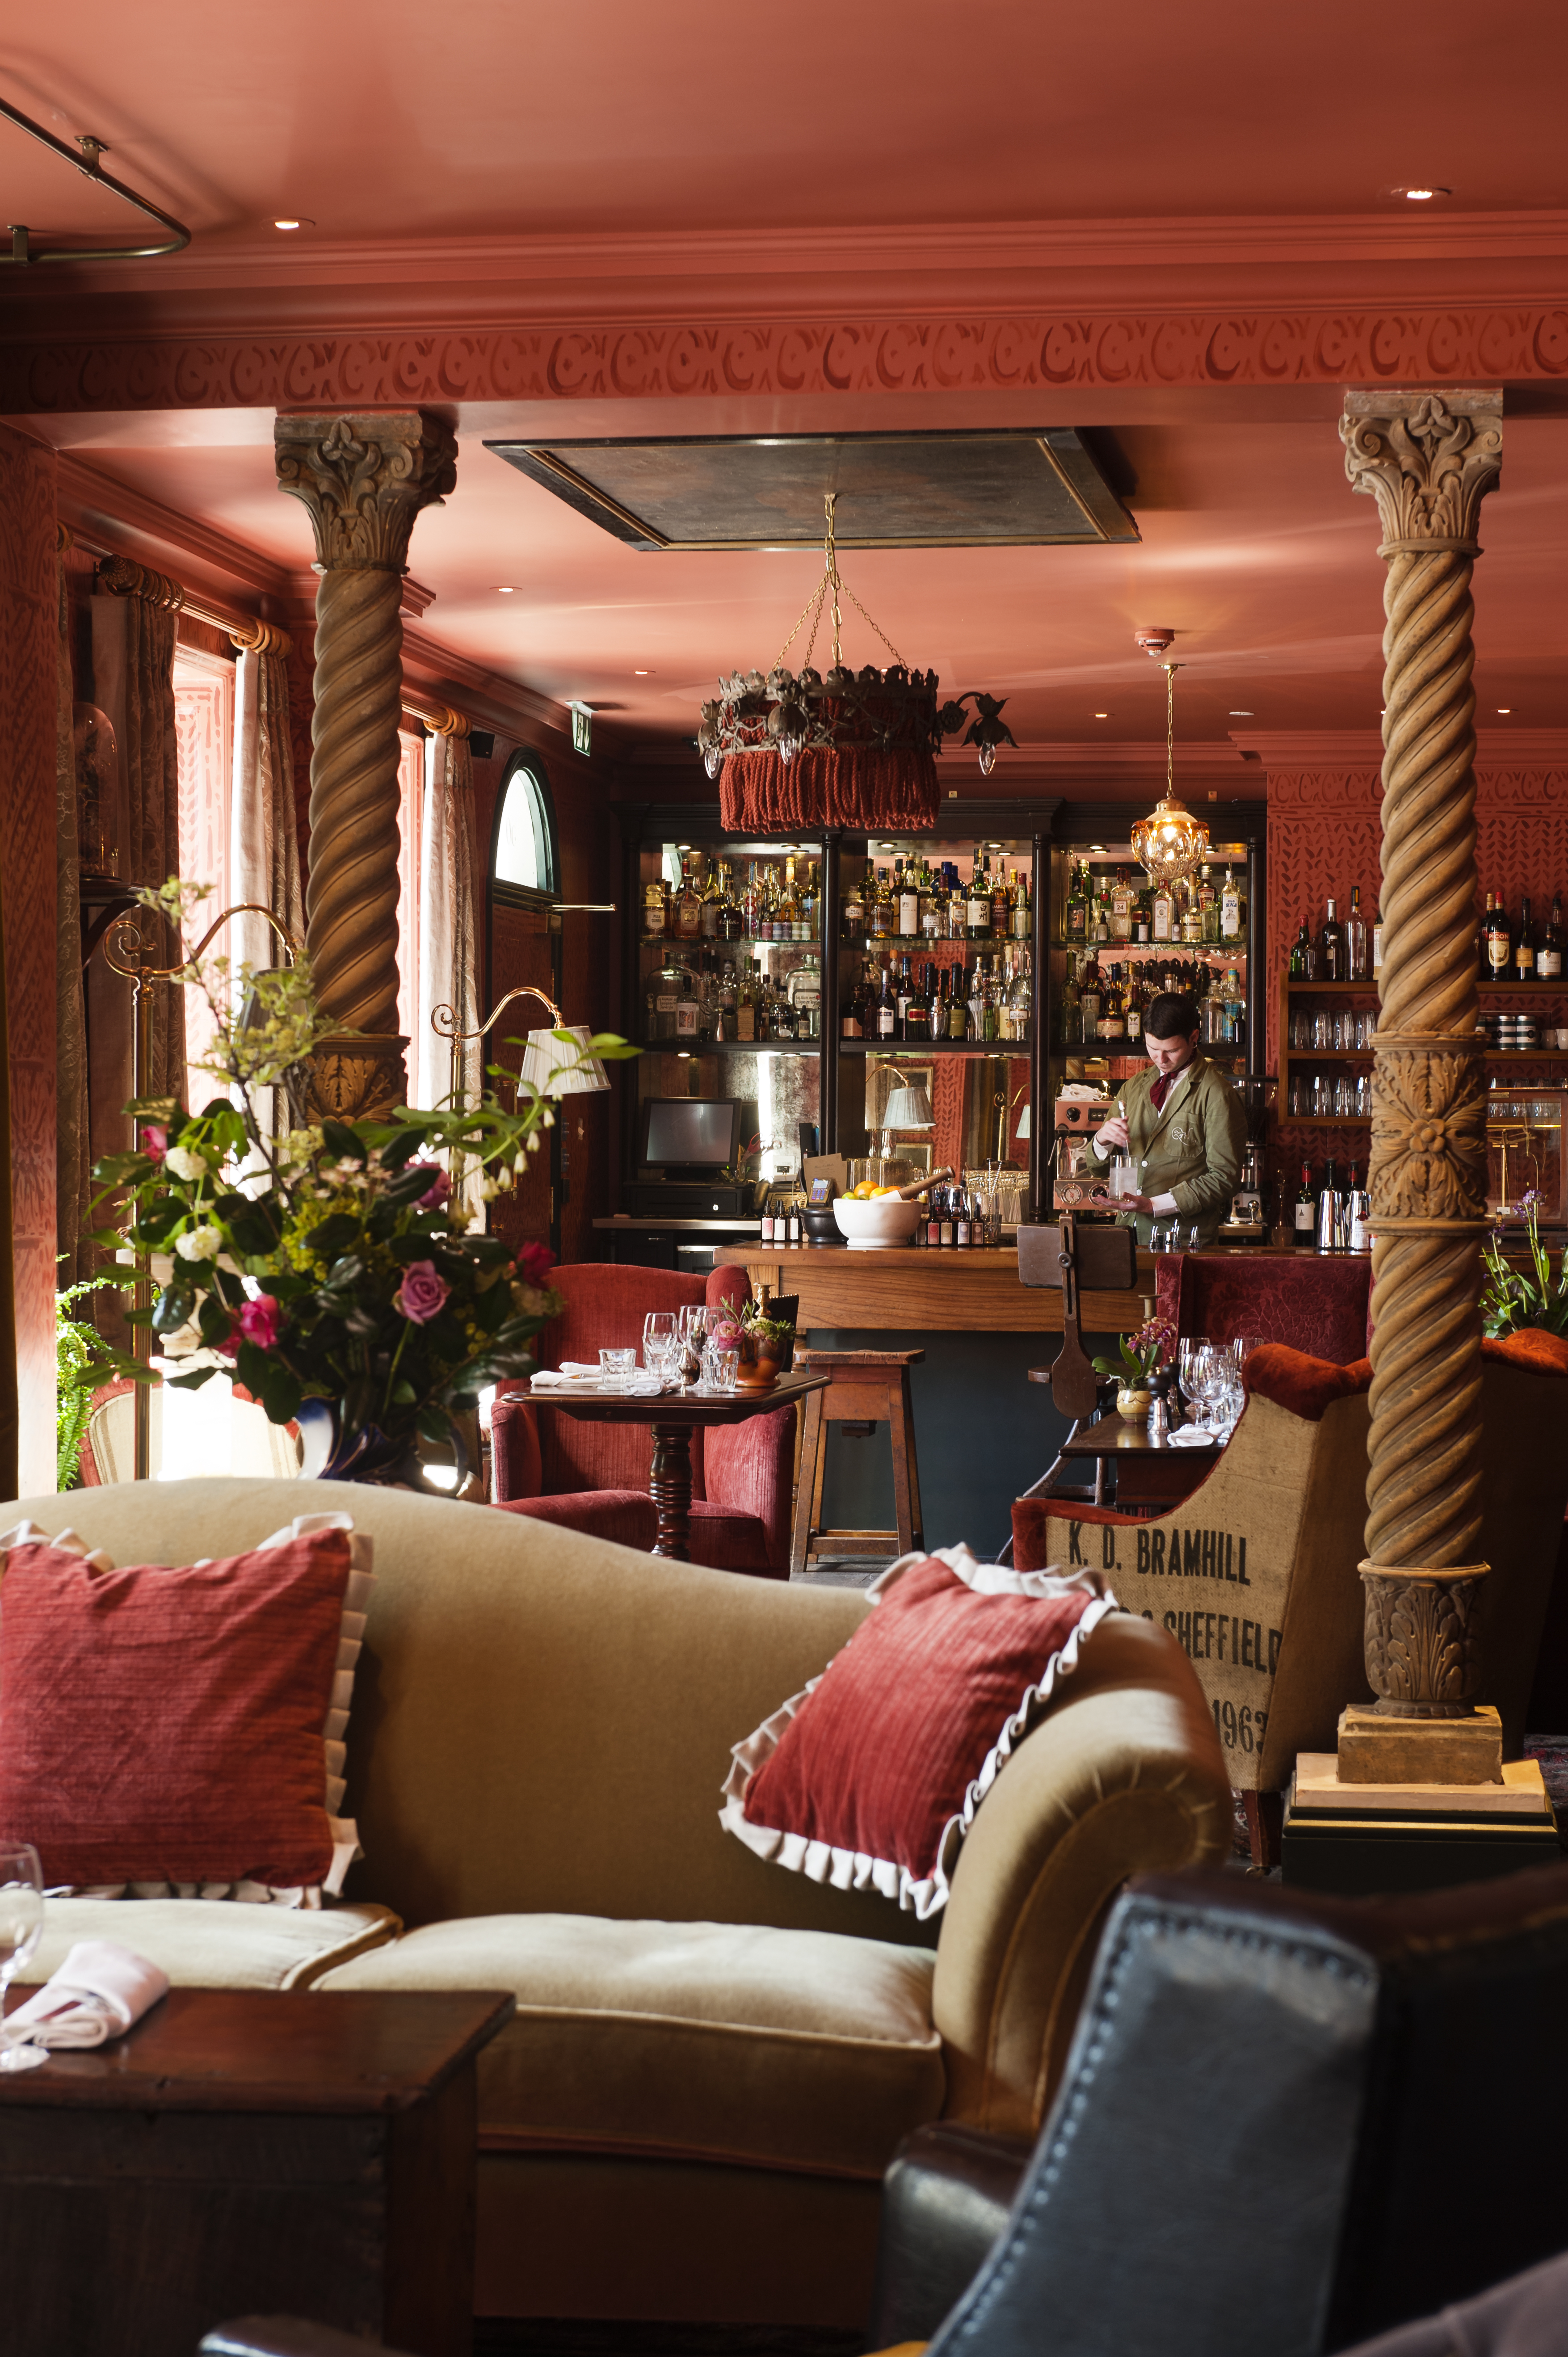 The Zetter Townhouse Is Crammed Full Of Collectibles Taxidermy And Victoriana From Aunt Wilhelminas Travels Its